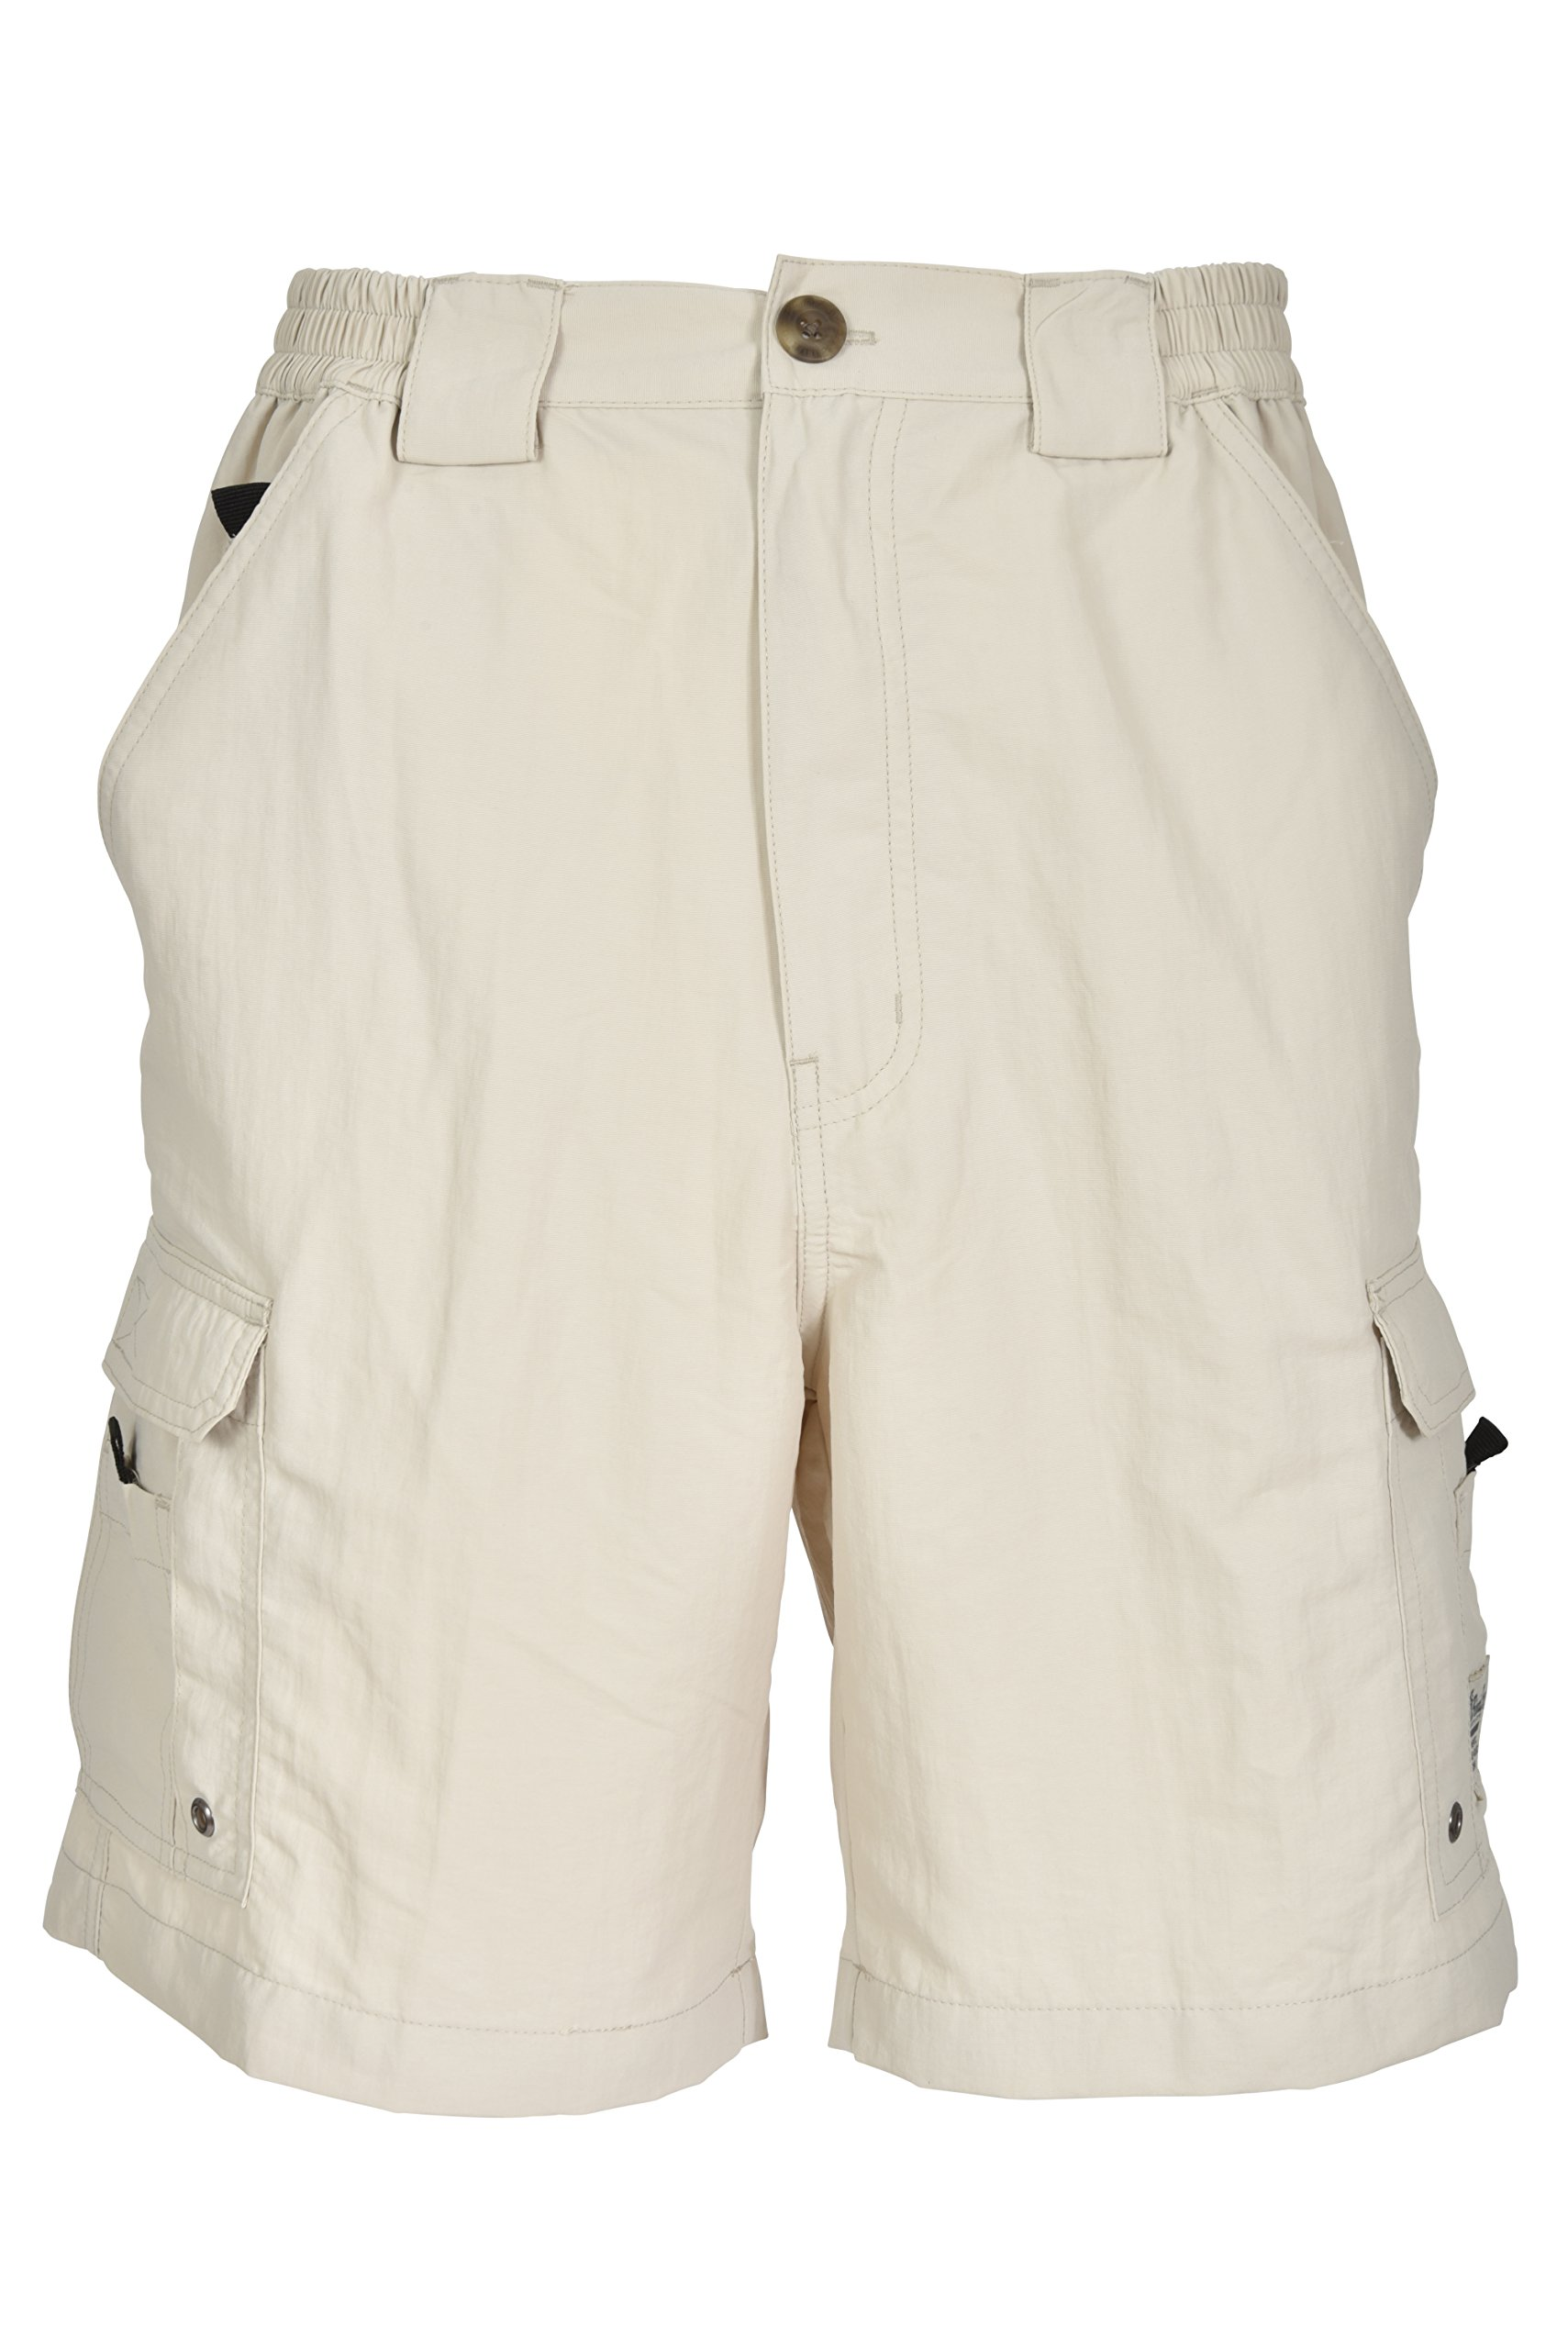 3fd12be9 Best Rated in Men's Shorts & Helpful Customer Reviews - Amazon.com